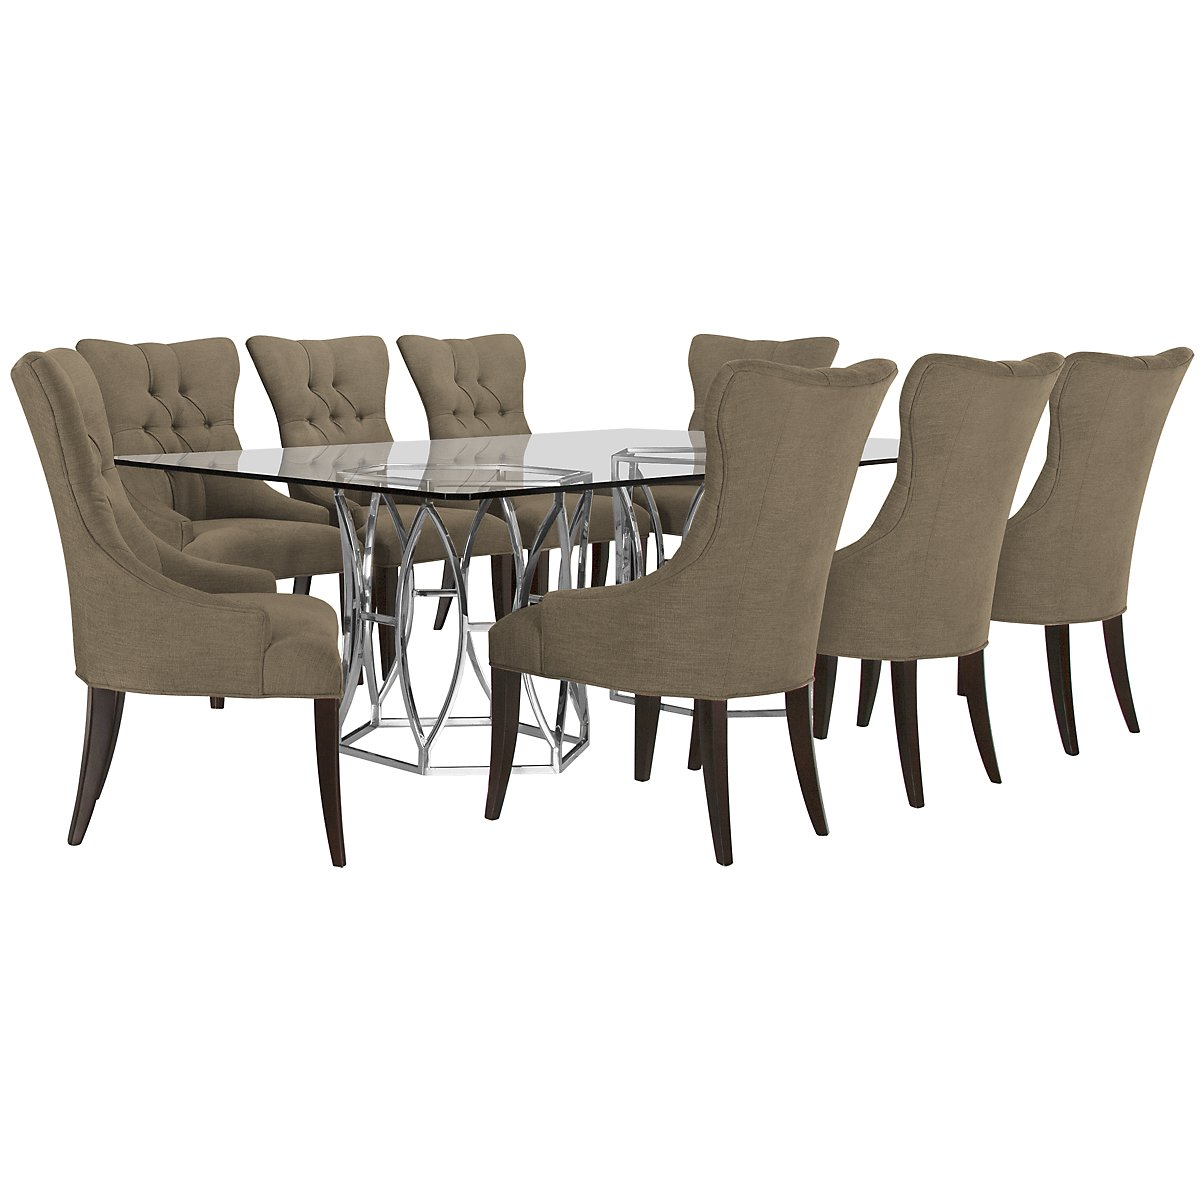 Argent Khaki Rectangular Table & 4 Upholstered Chairs